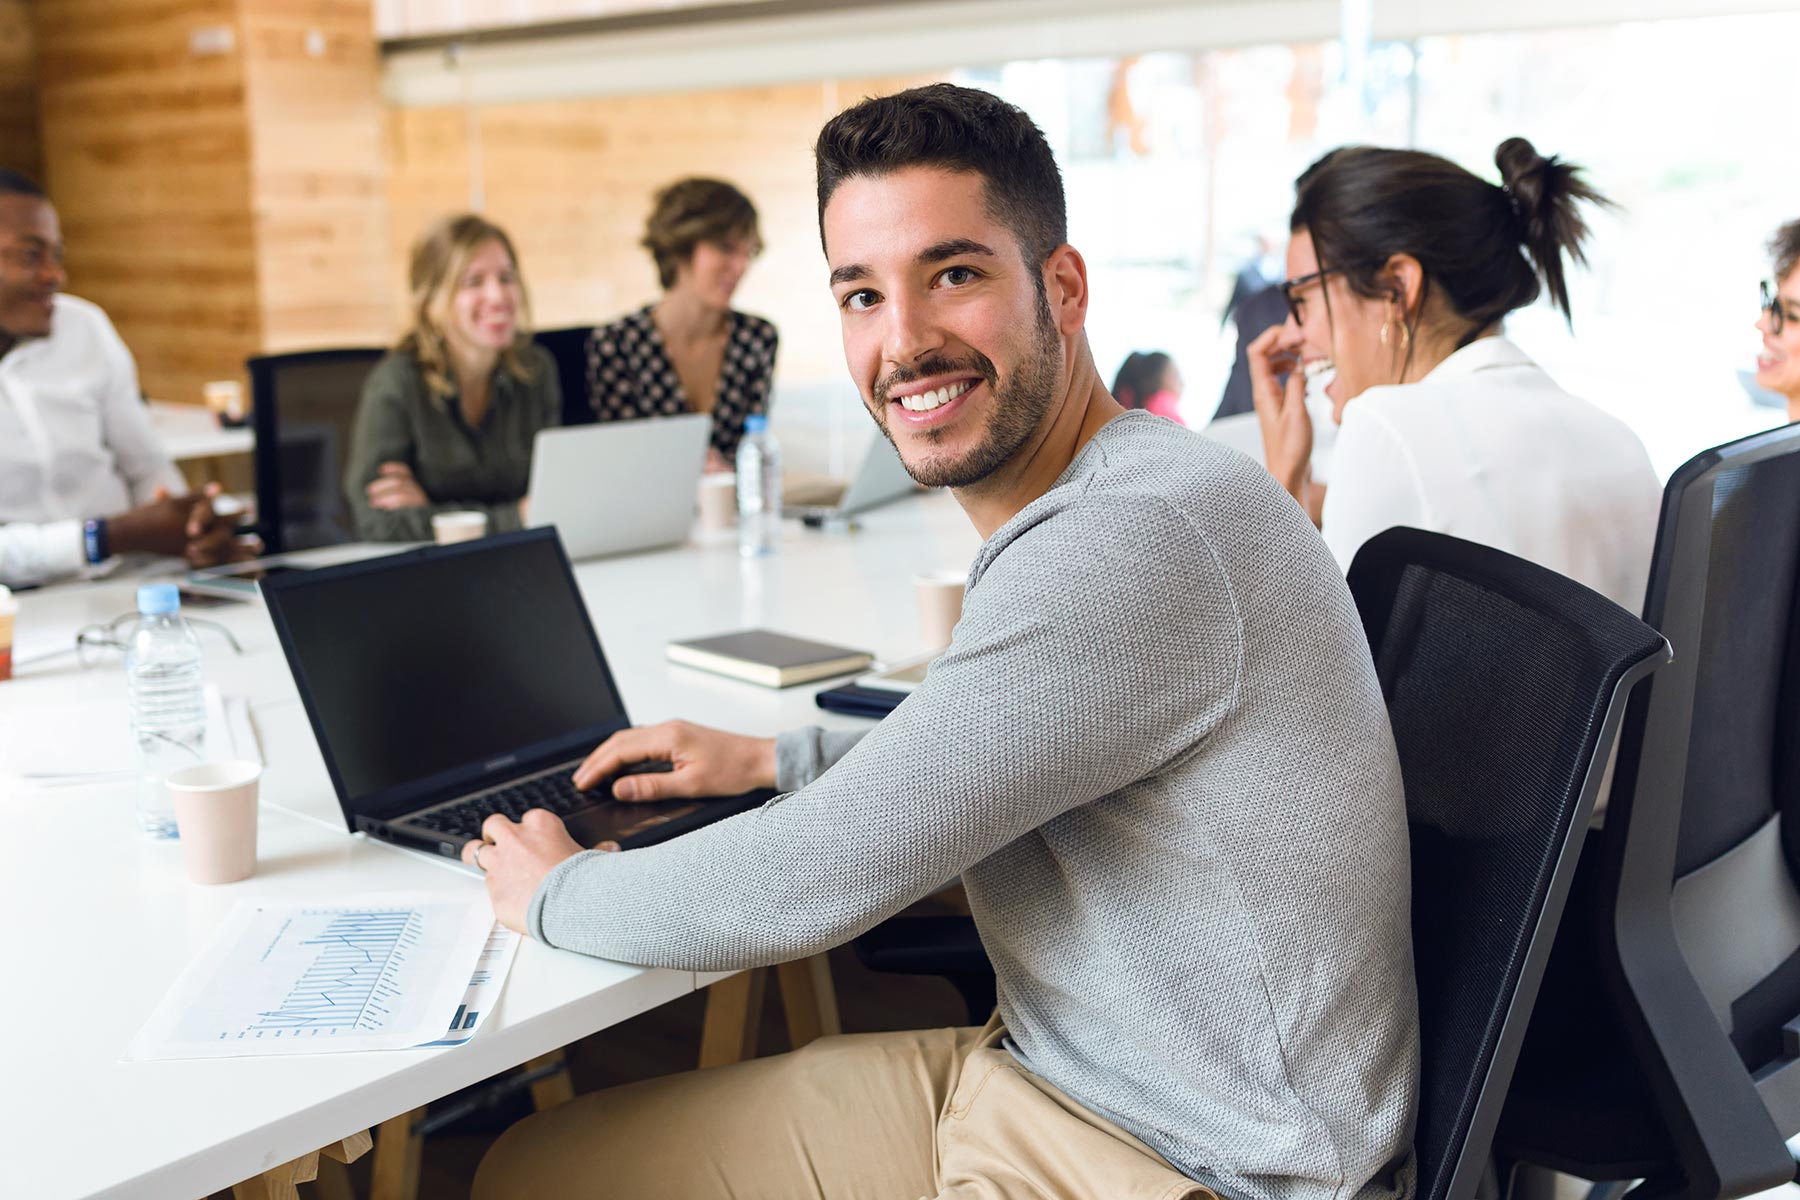 attractive-young-businessman-working-with-laptop-w-CLTWURQ